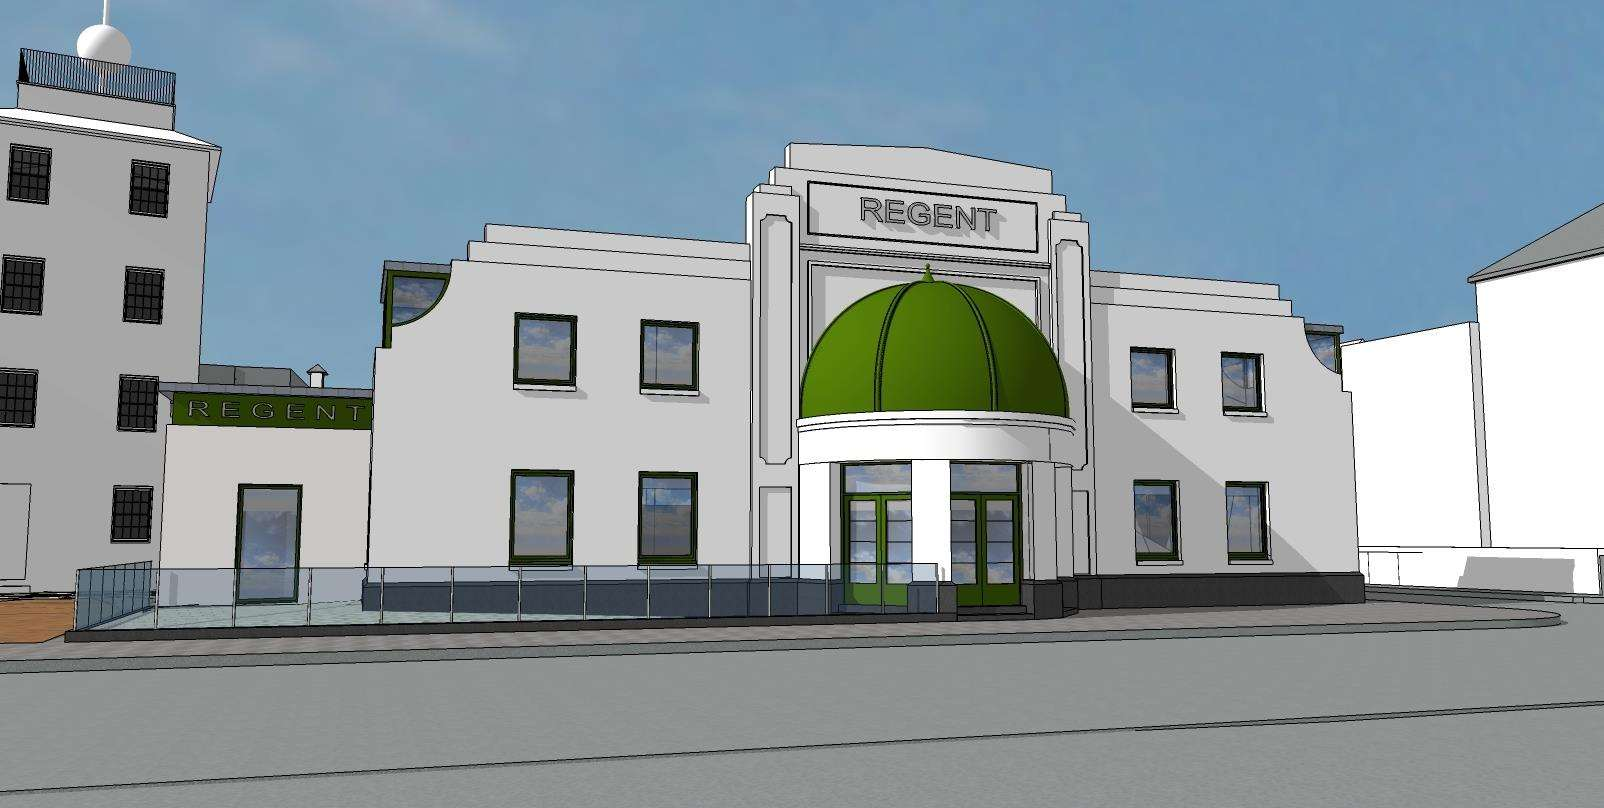 The latest plans for The Regent in Deal have been submitted to DDC (6236292)